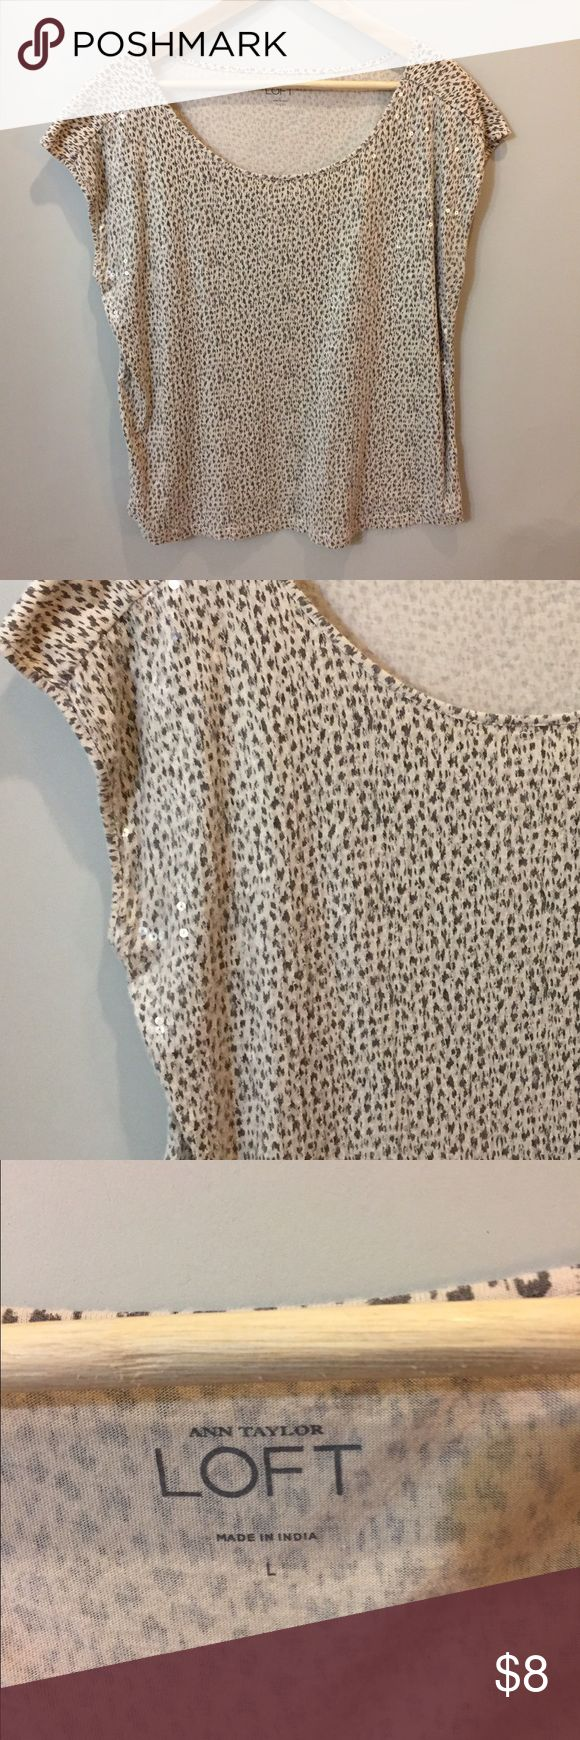 Cap sleeve sequined animal print tee This lady shines! All over front clear/white sequins layered on the animal print cotton base. Eye catching but subtly. Back is not sequined. Because that would be too much. LOFT Tops Tees - Short Sleeve